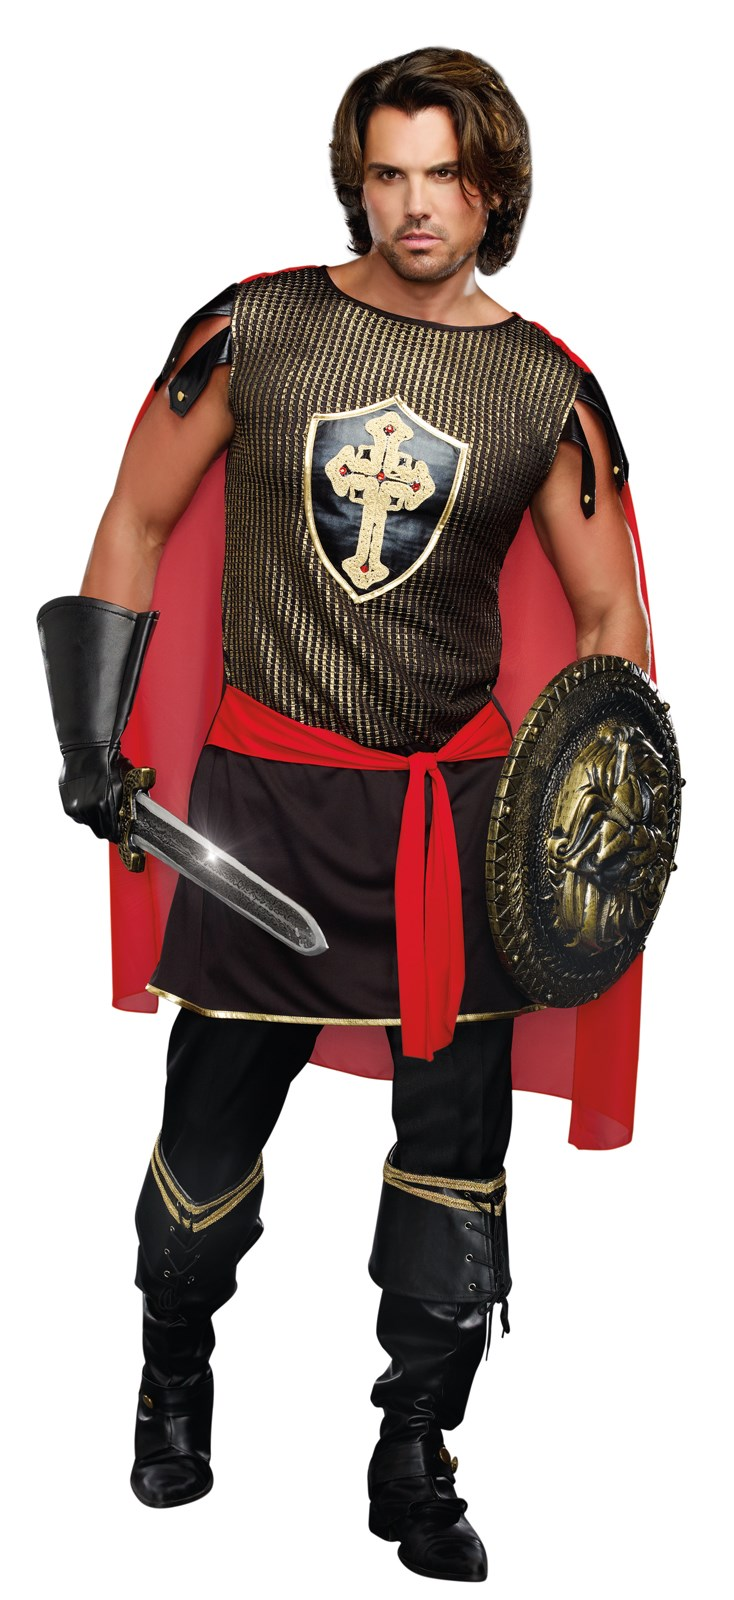 Image of Adult King Of Swords Medieval Costume